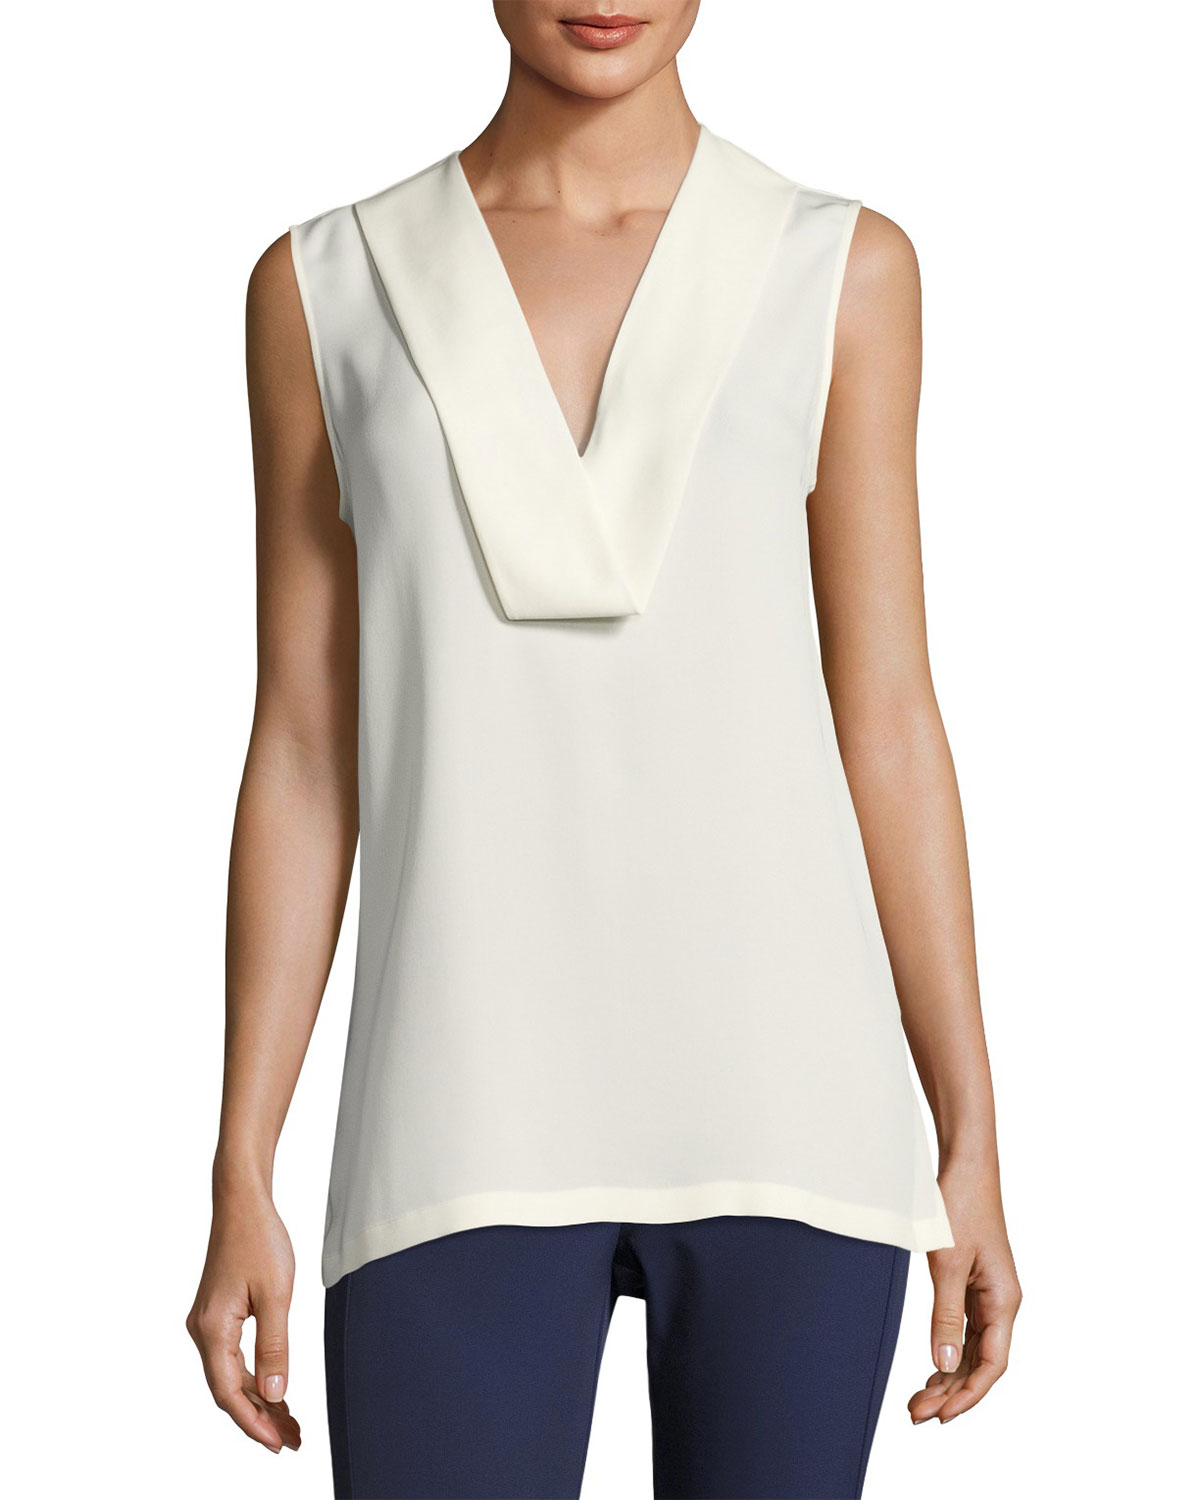 Salvatill Sleeveless Silk Top, Ivory